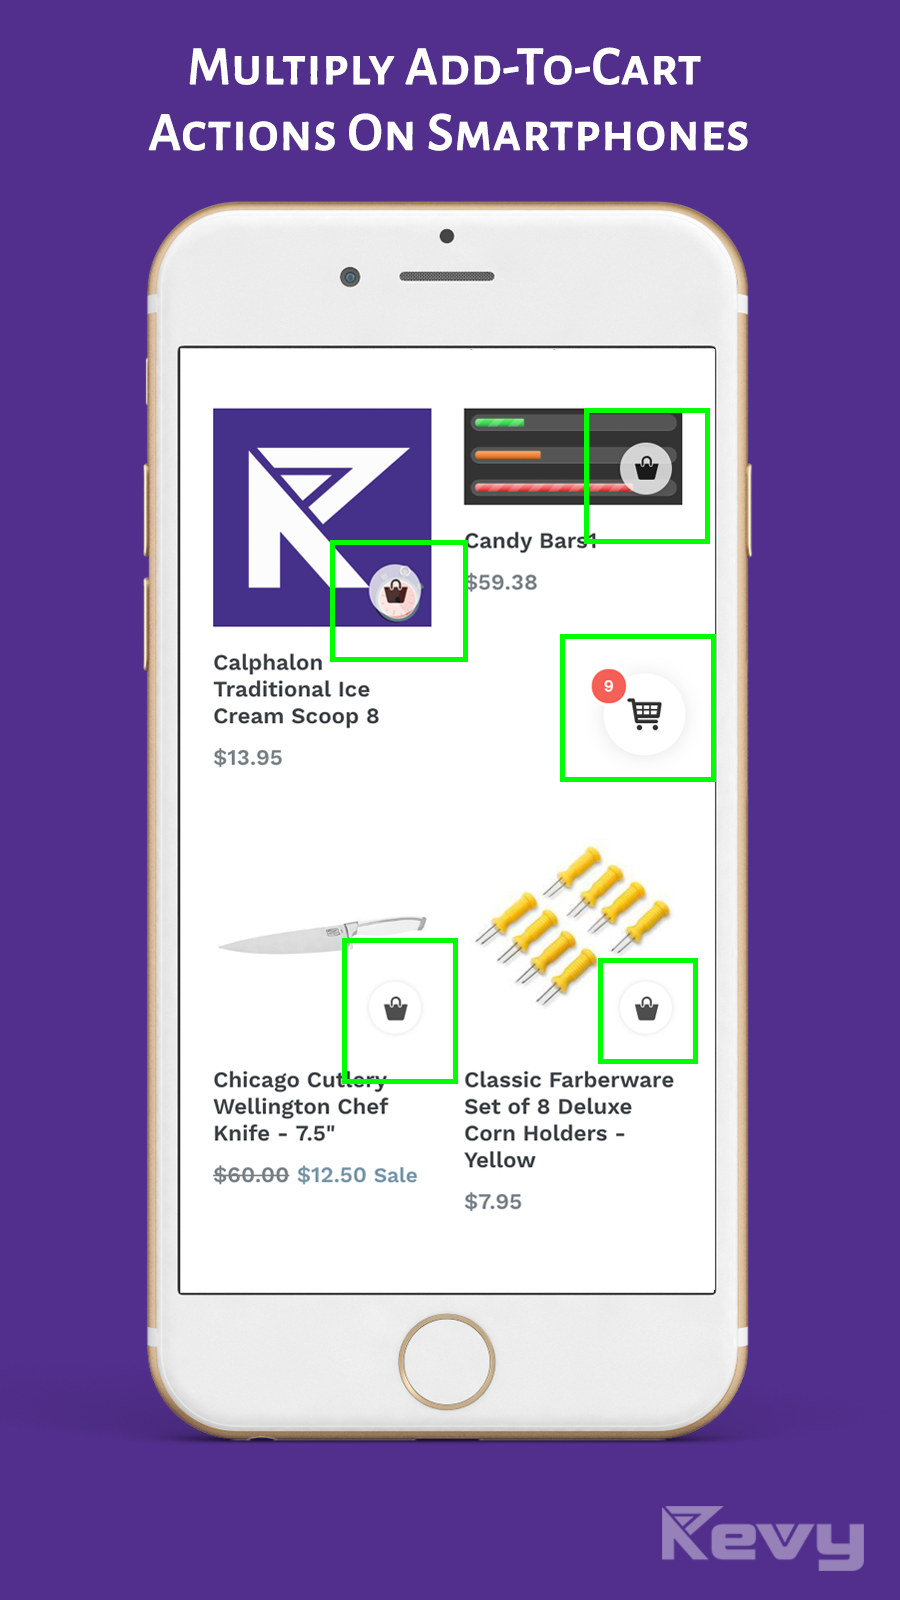 Multiply and boost the add-to-cart actions on mobile screens